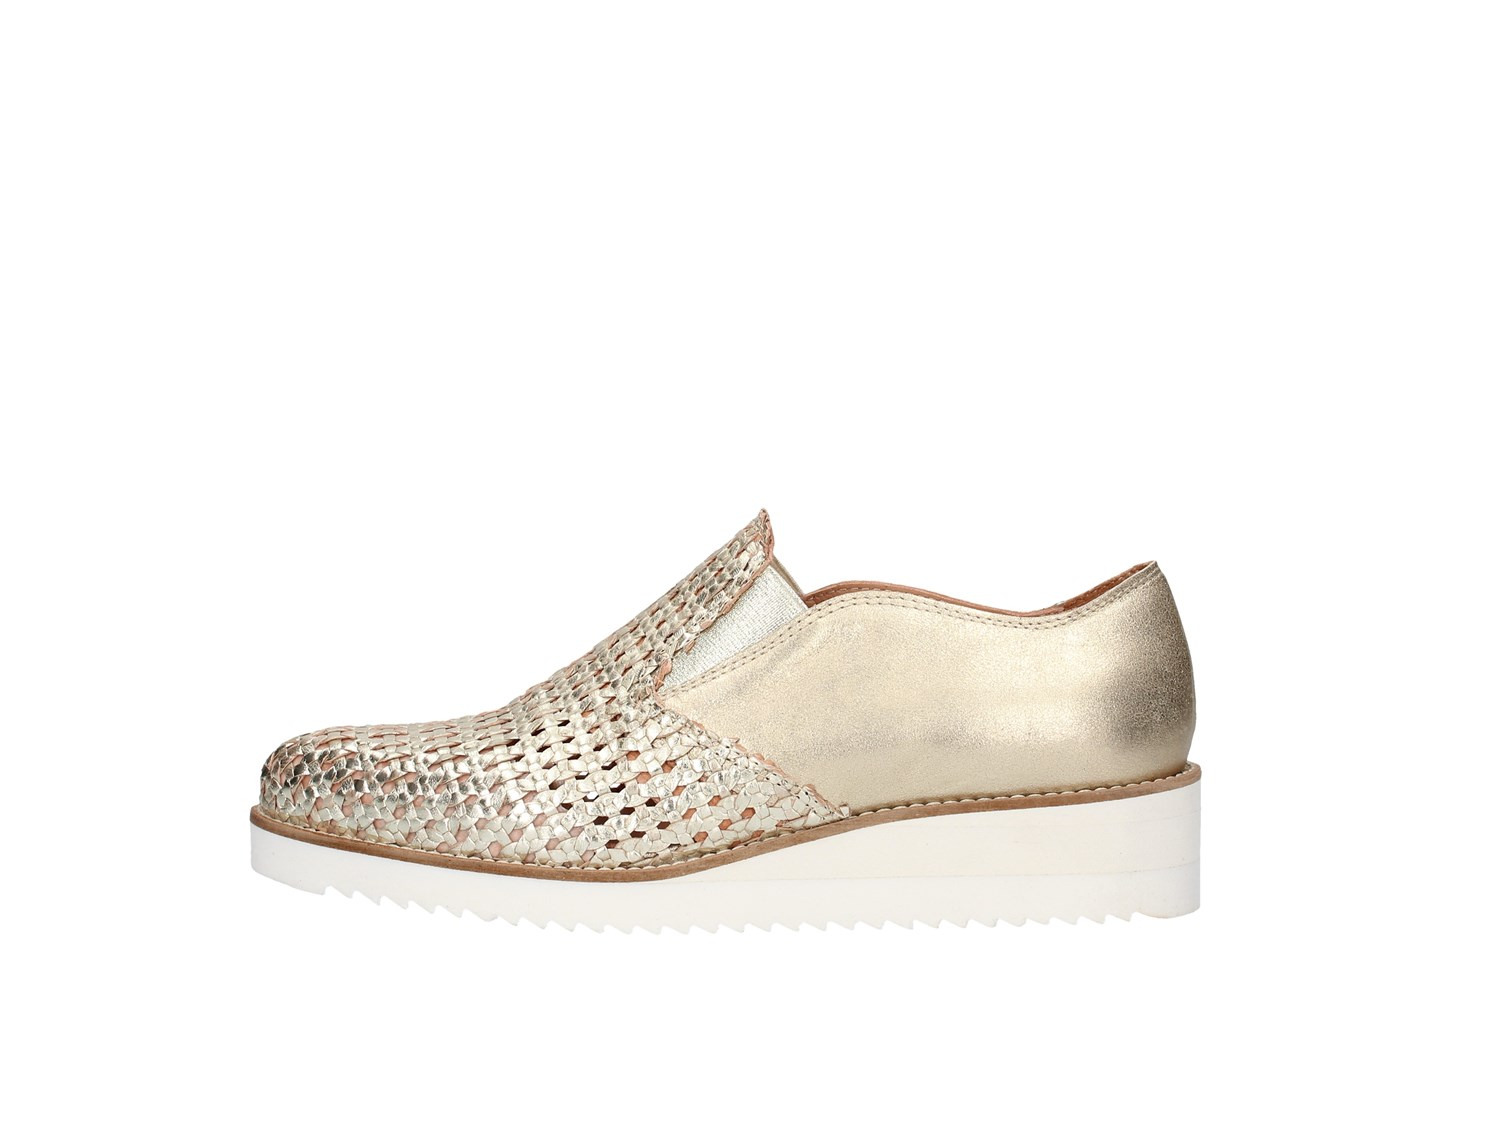 Slip-on Donna Minichino Francesco Minichino Donna 1328 Primavera/Estate ef83ff